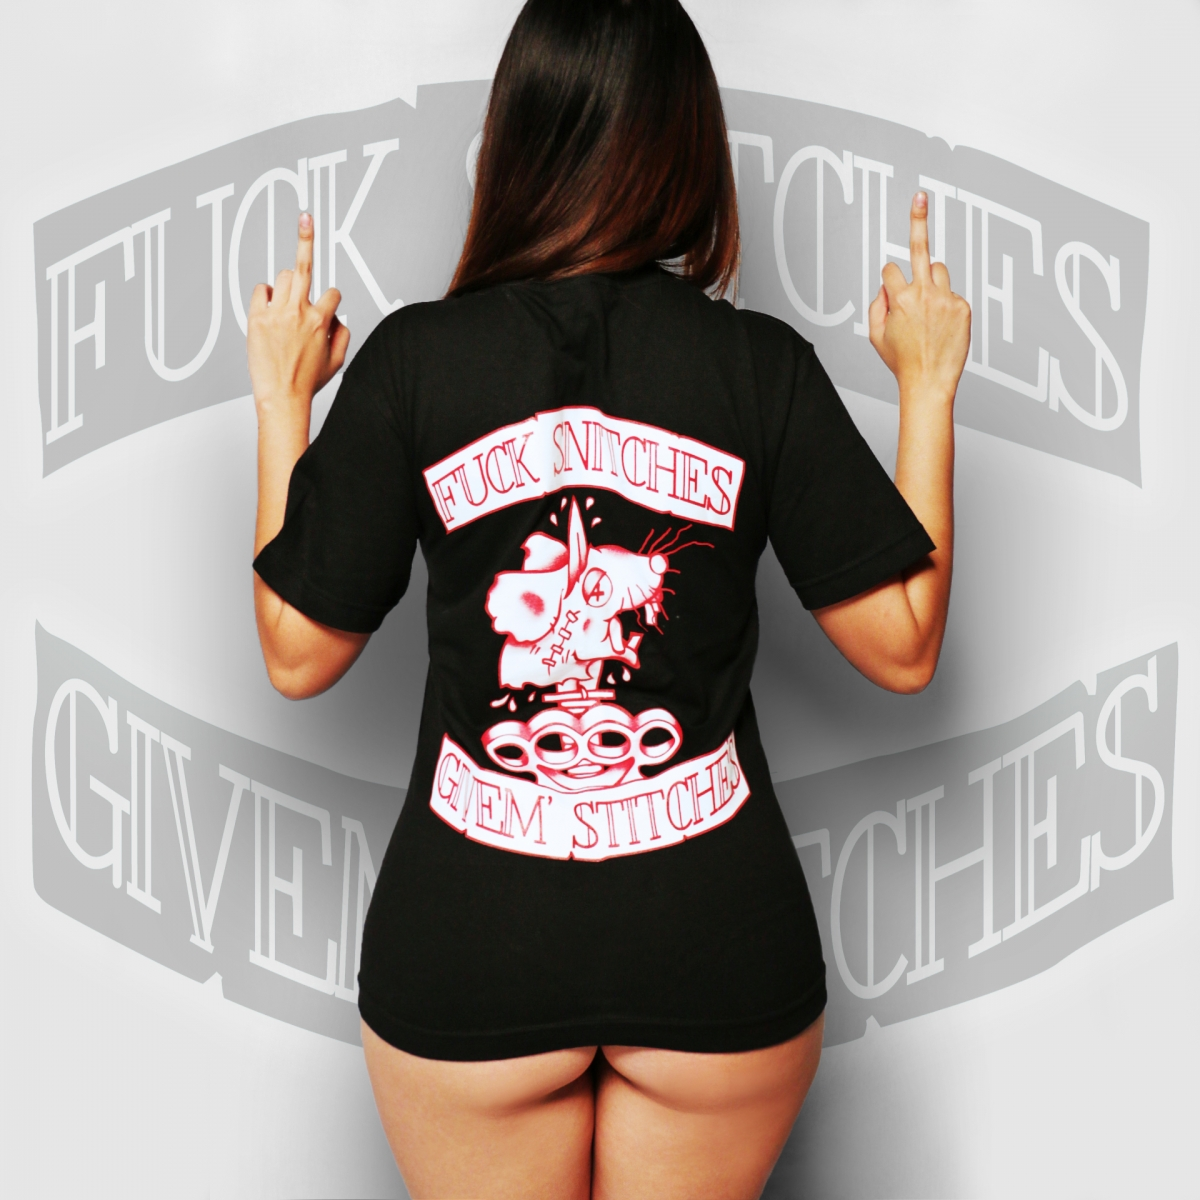 marissa fuck snitches givem stitches swag ffc 2ill clothing 3